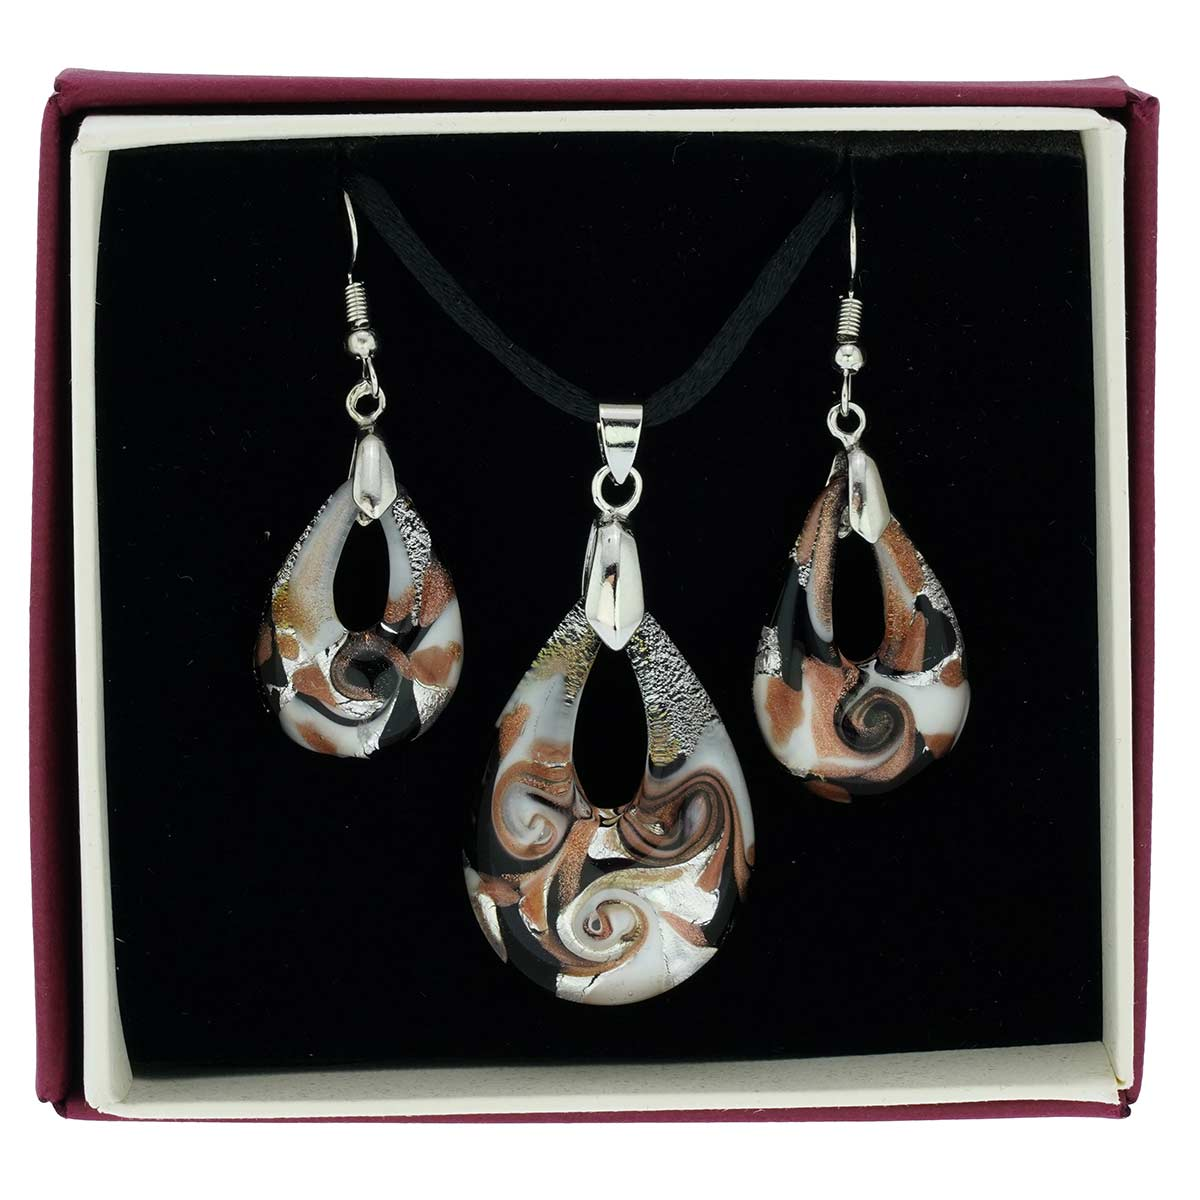 Gemma Murano Glass Necklace and Earrings Set - Black